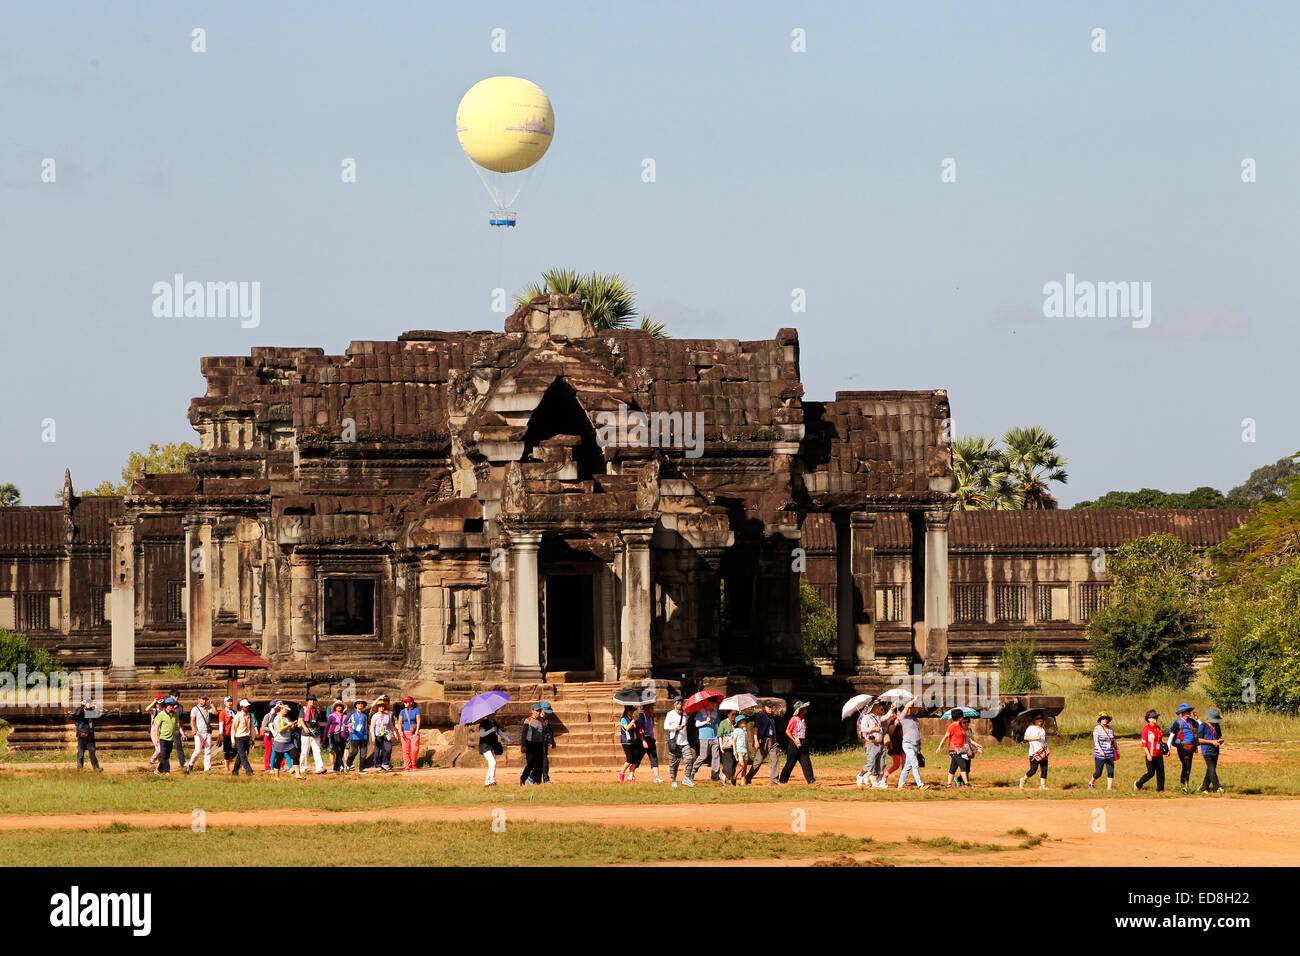 A group of tourists at Angkor Wat temple in Cambodia with the hot air balloon which ascends to allow tourists to Stock Photo